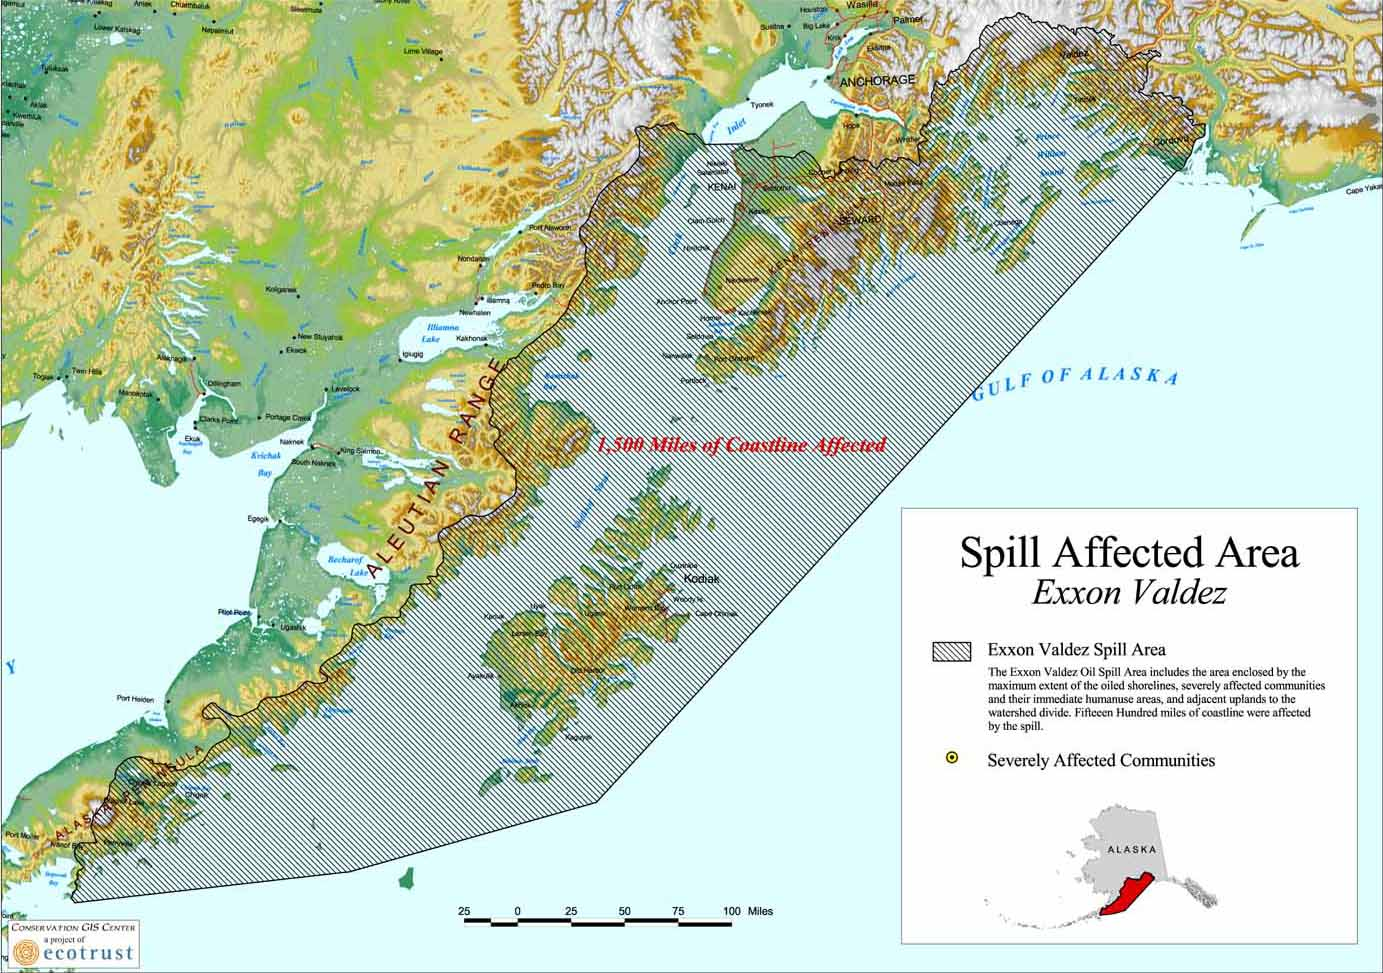 http://feww.files.wordpress.com/2009/06/exxon-valdez-spill-map.jpg